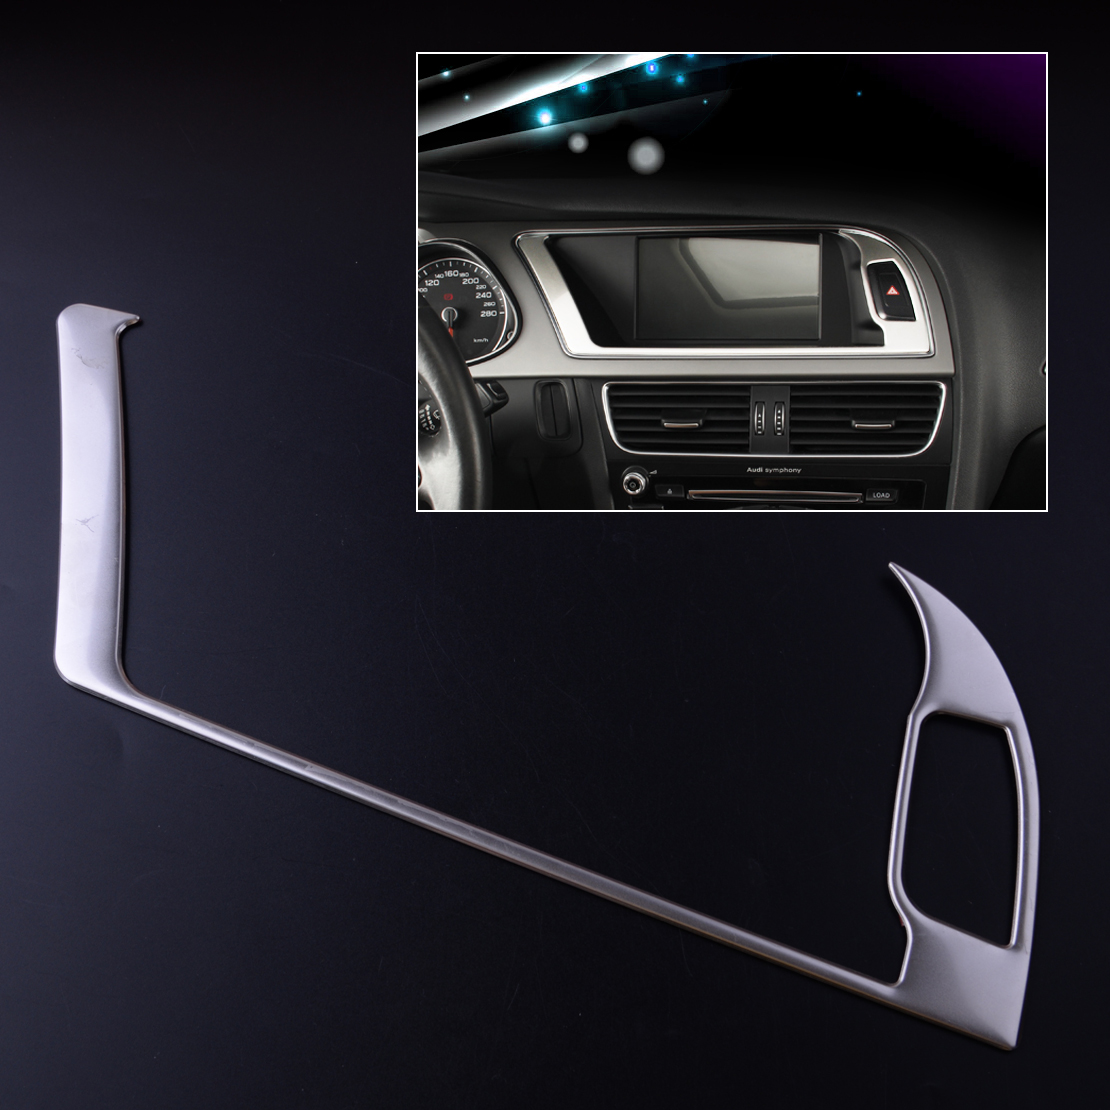 CITALL Stainless Steel Car Auto Center Console Navigation Warning Light Panel Cover Trim fit for Audi